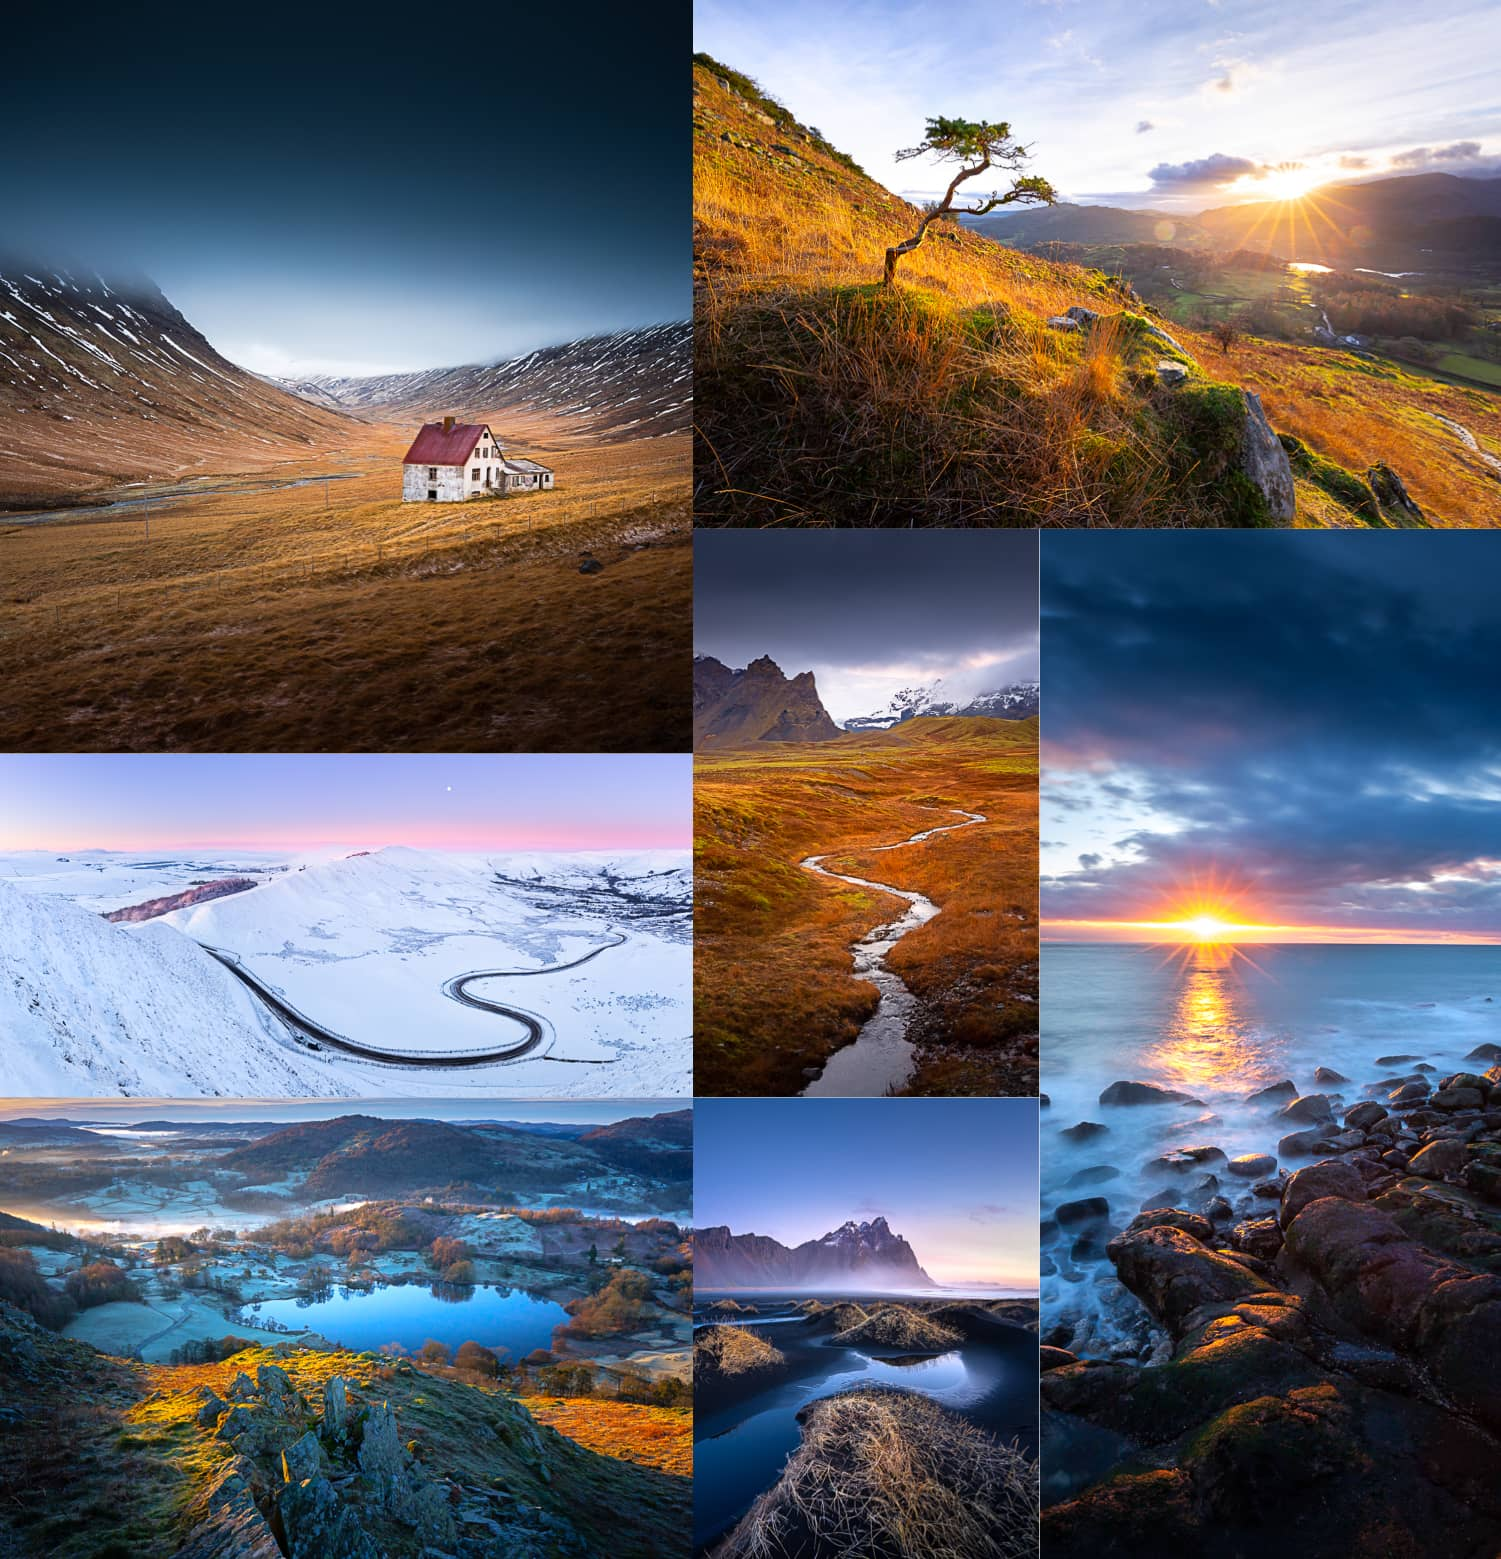 Landscape photography from 4 months on the road